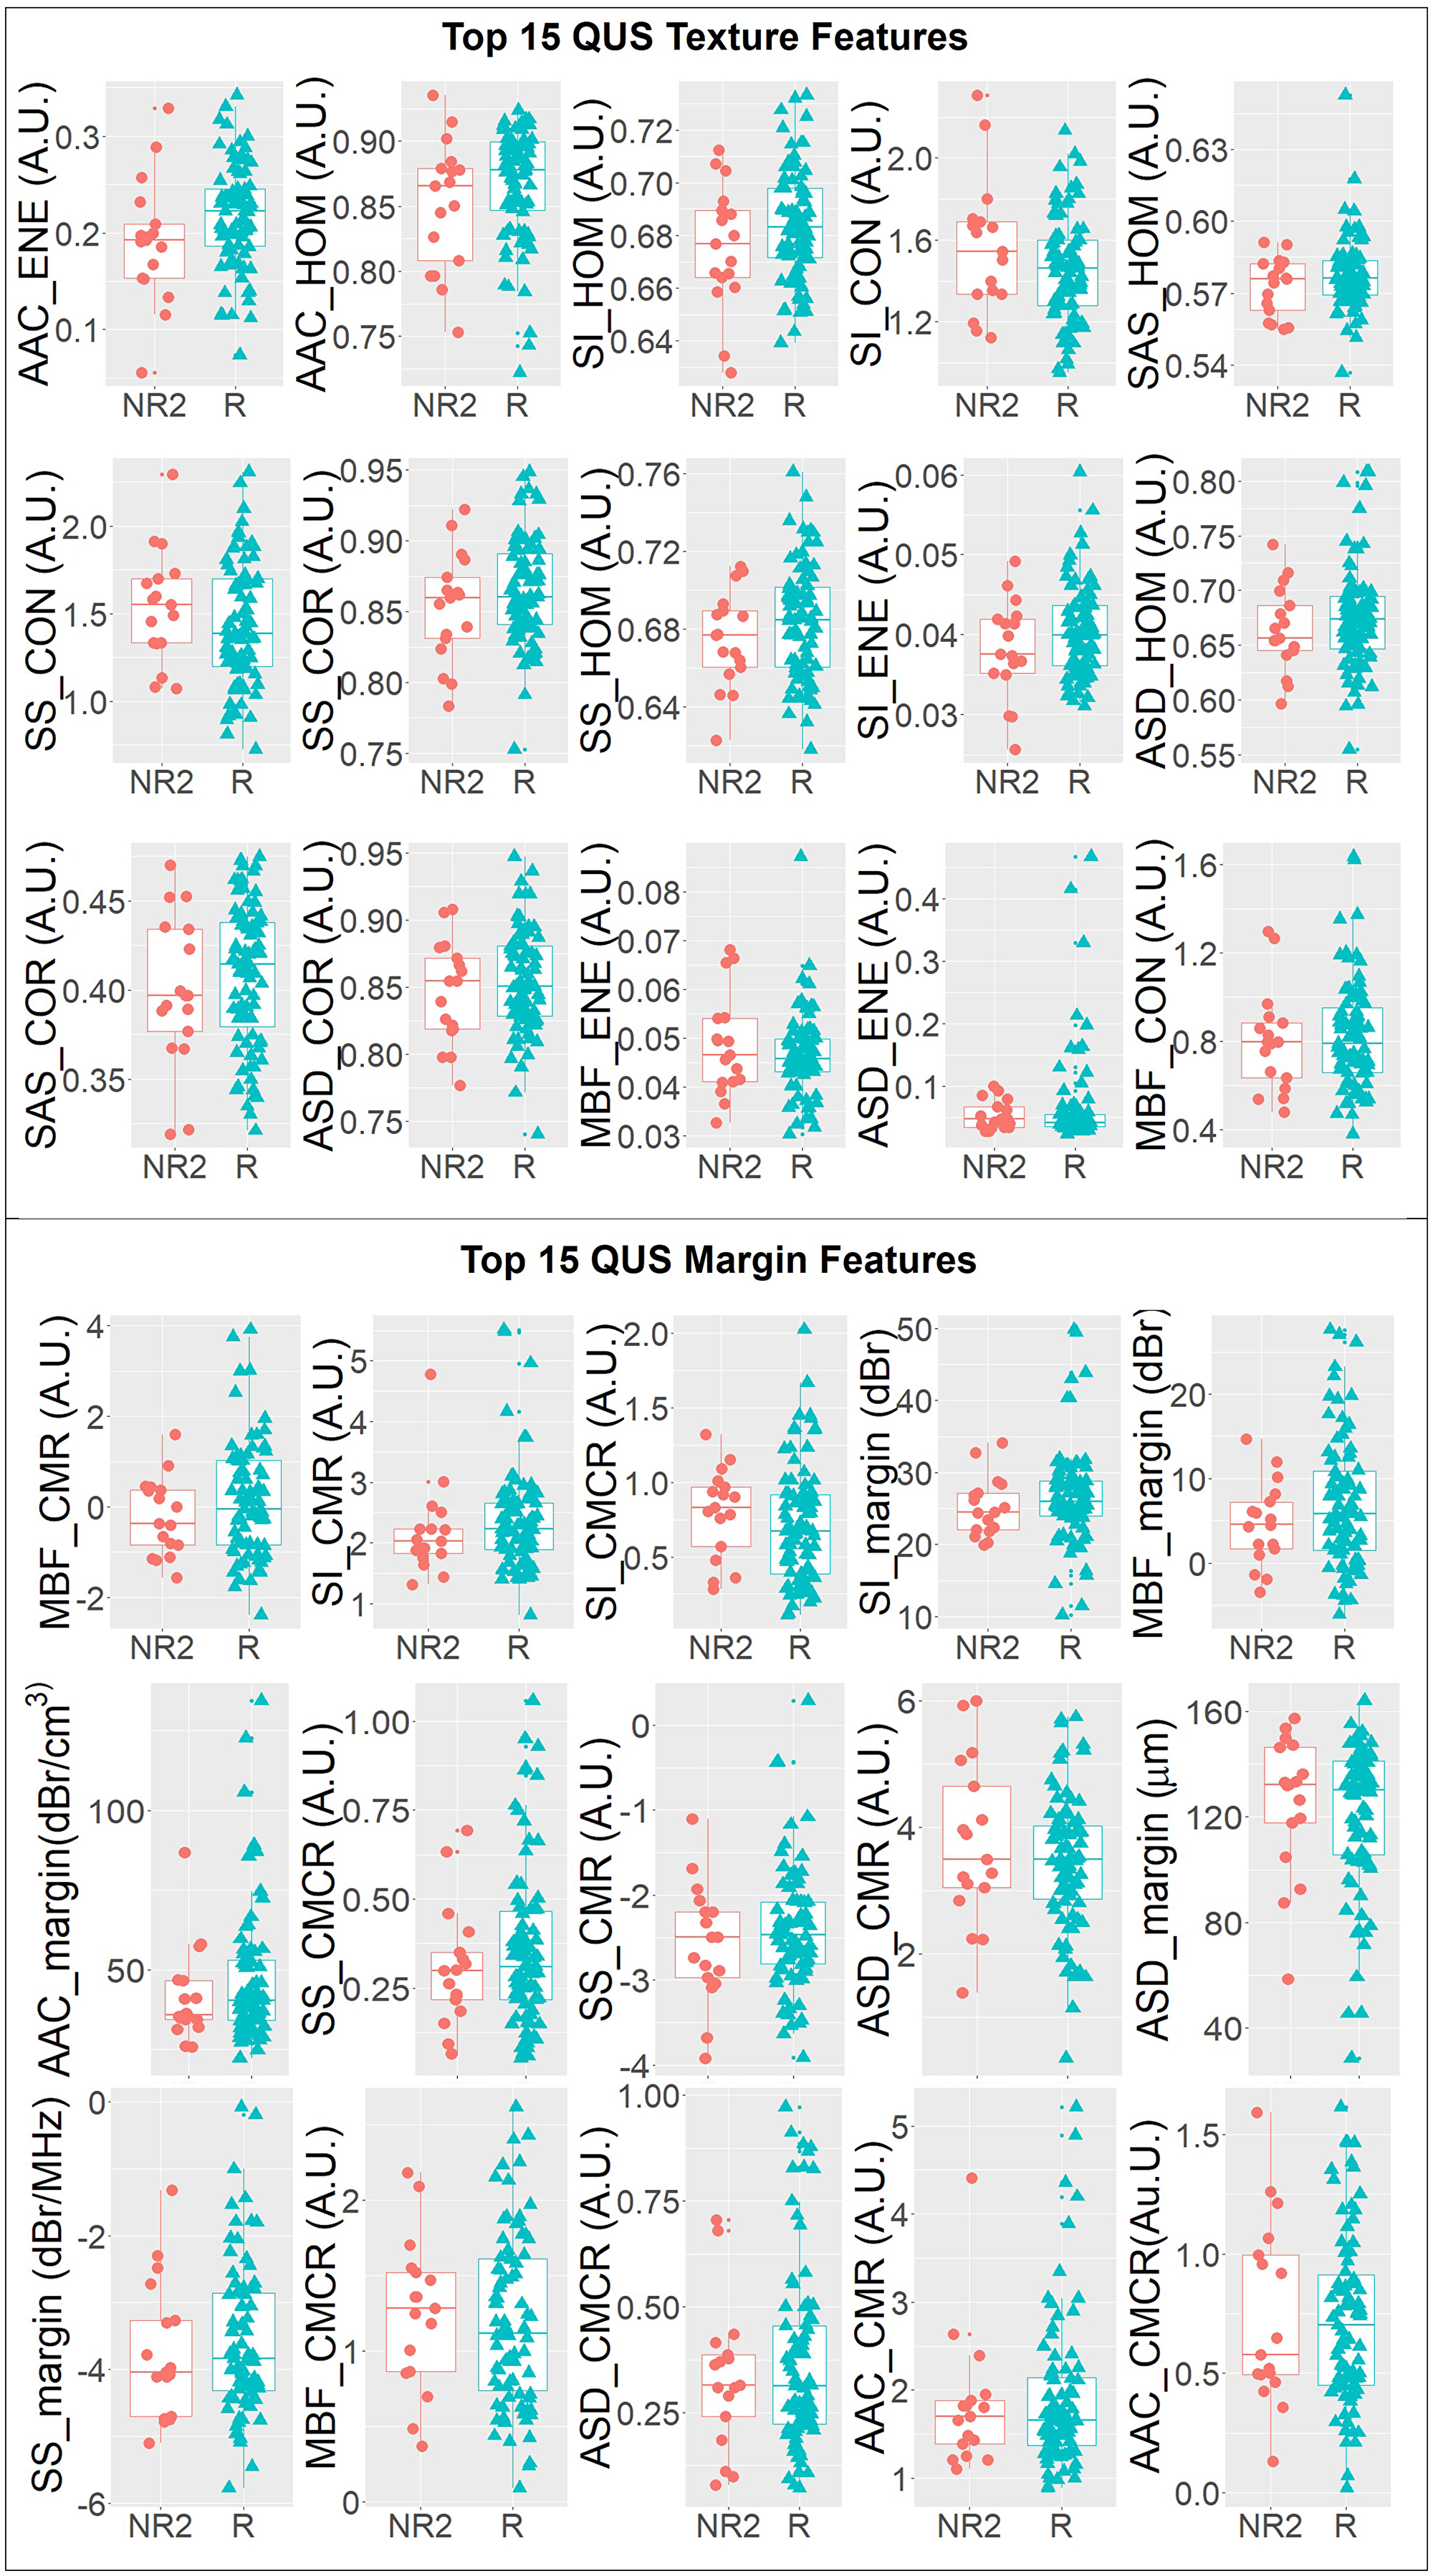 One-dimensional scatter plots and overlaid boxplots of the top 15 QUS texture featuers and top 15 QUS margin features comparing responder (R) and non-responder (NR2) groups.